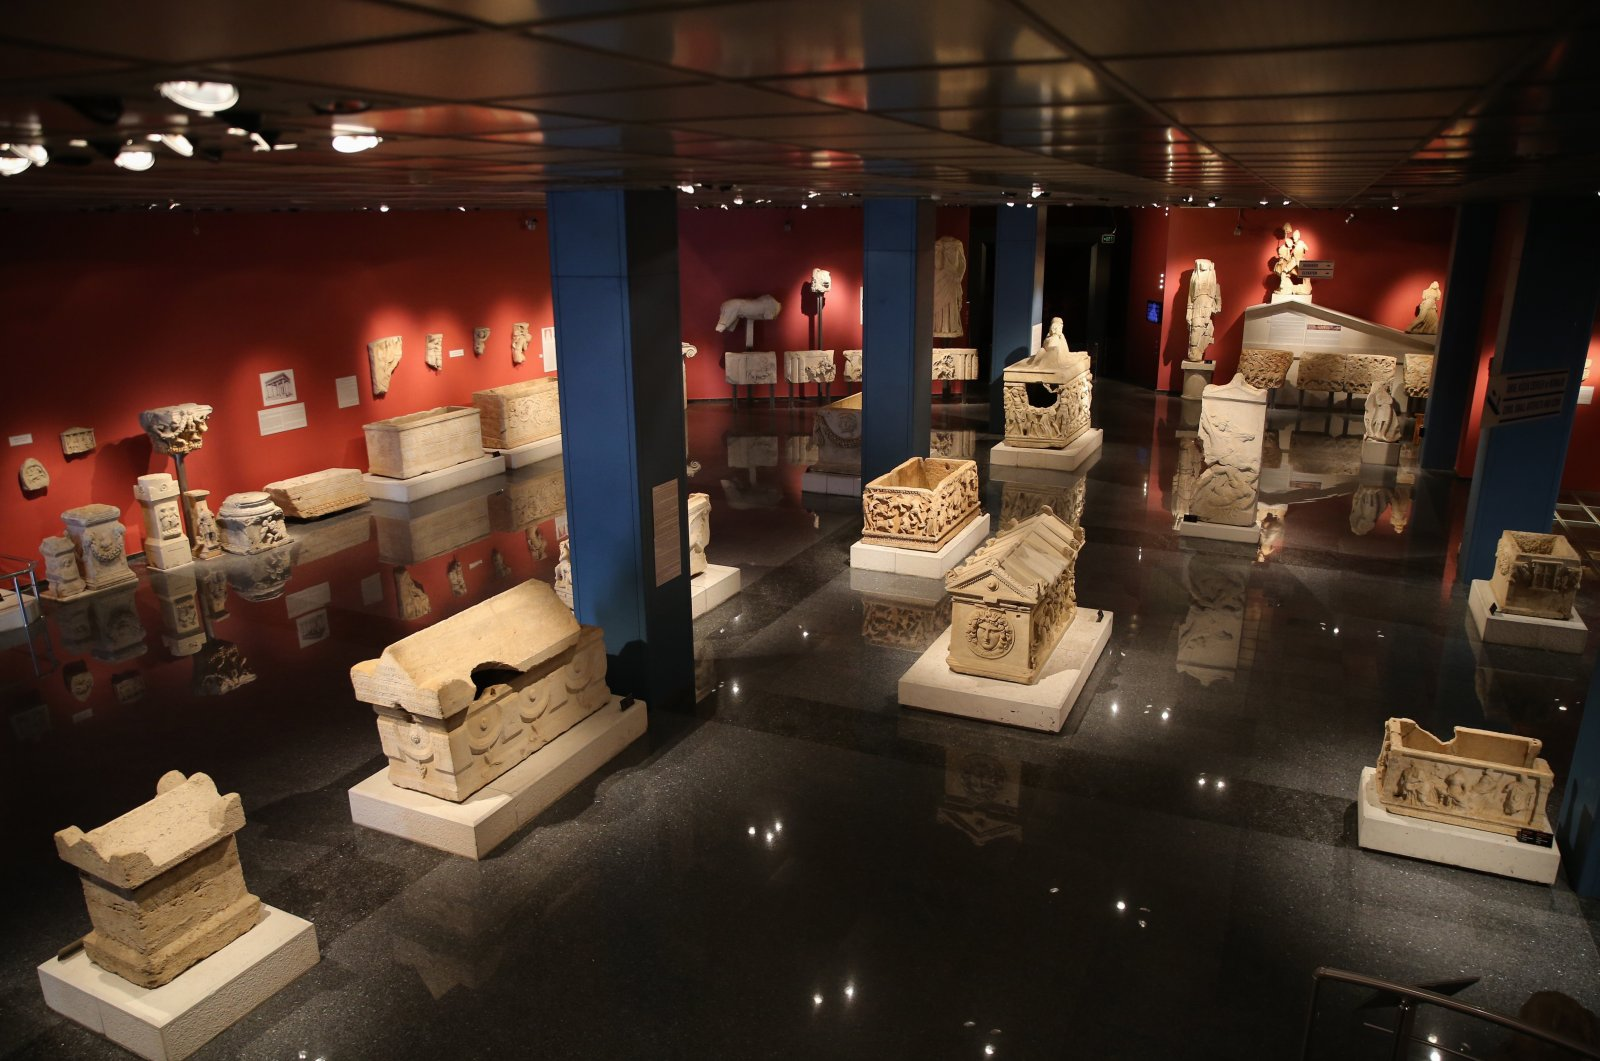 Antalya Museum: Heaven of treasures, sarcophagi in southern Turkey